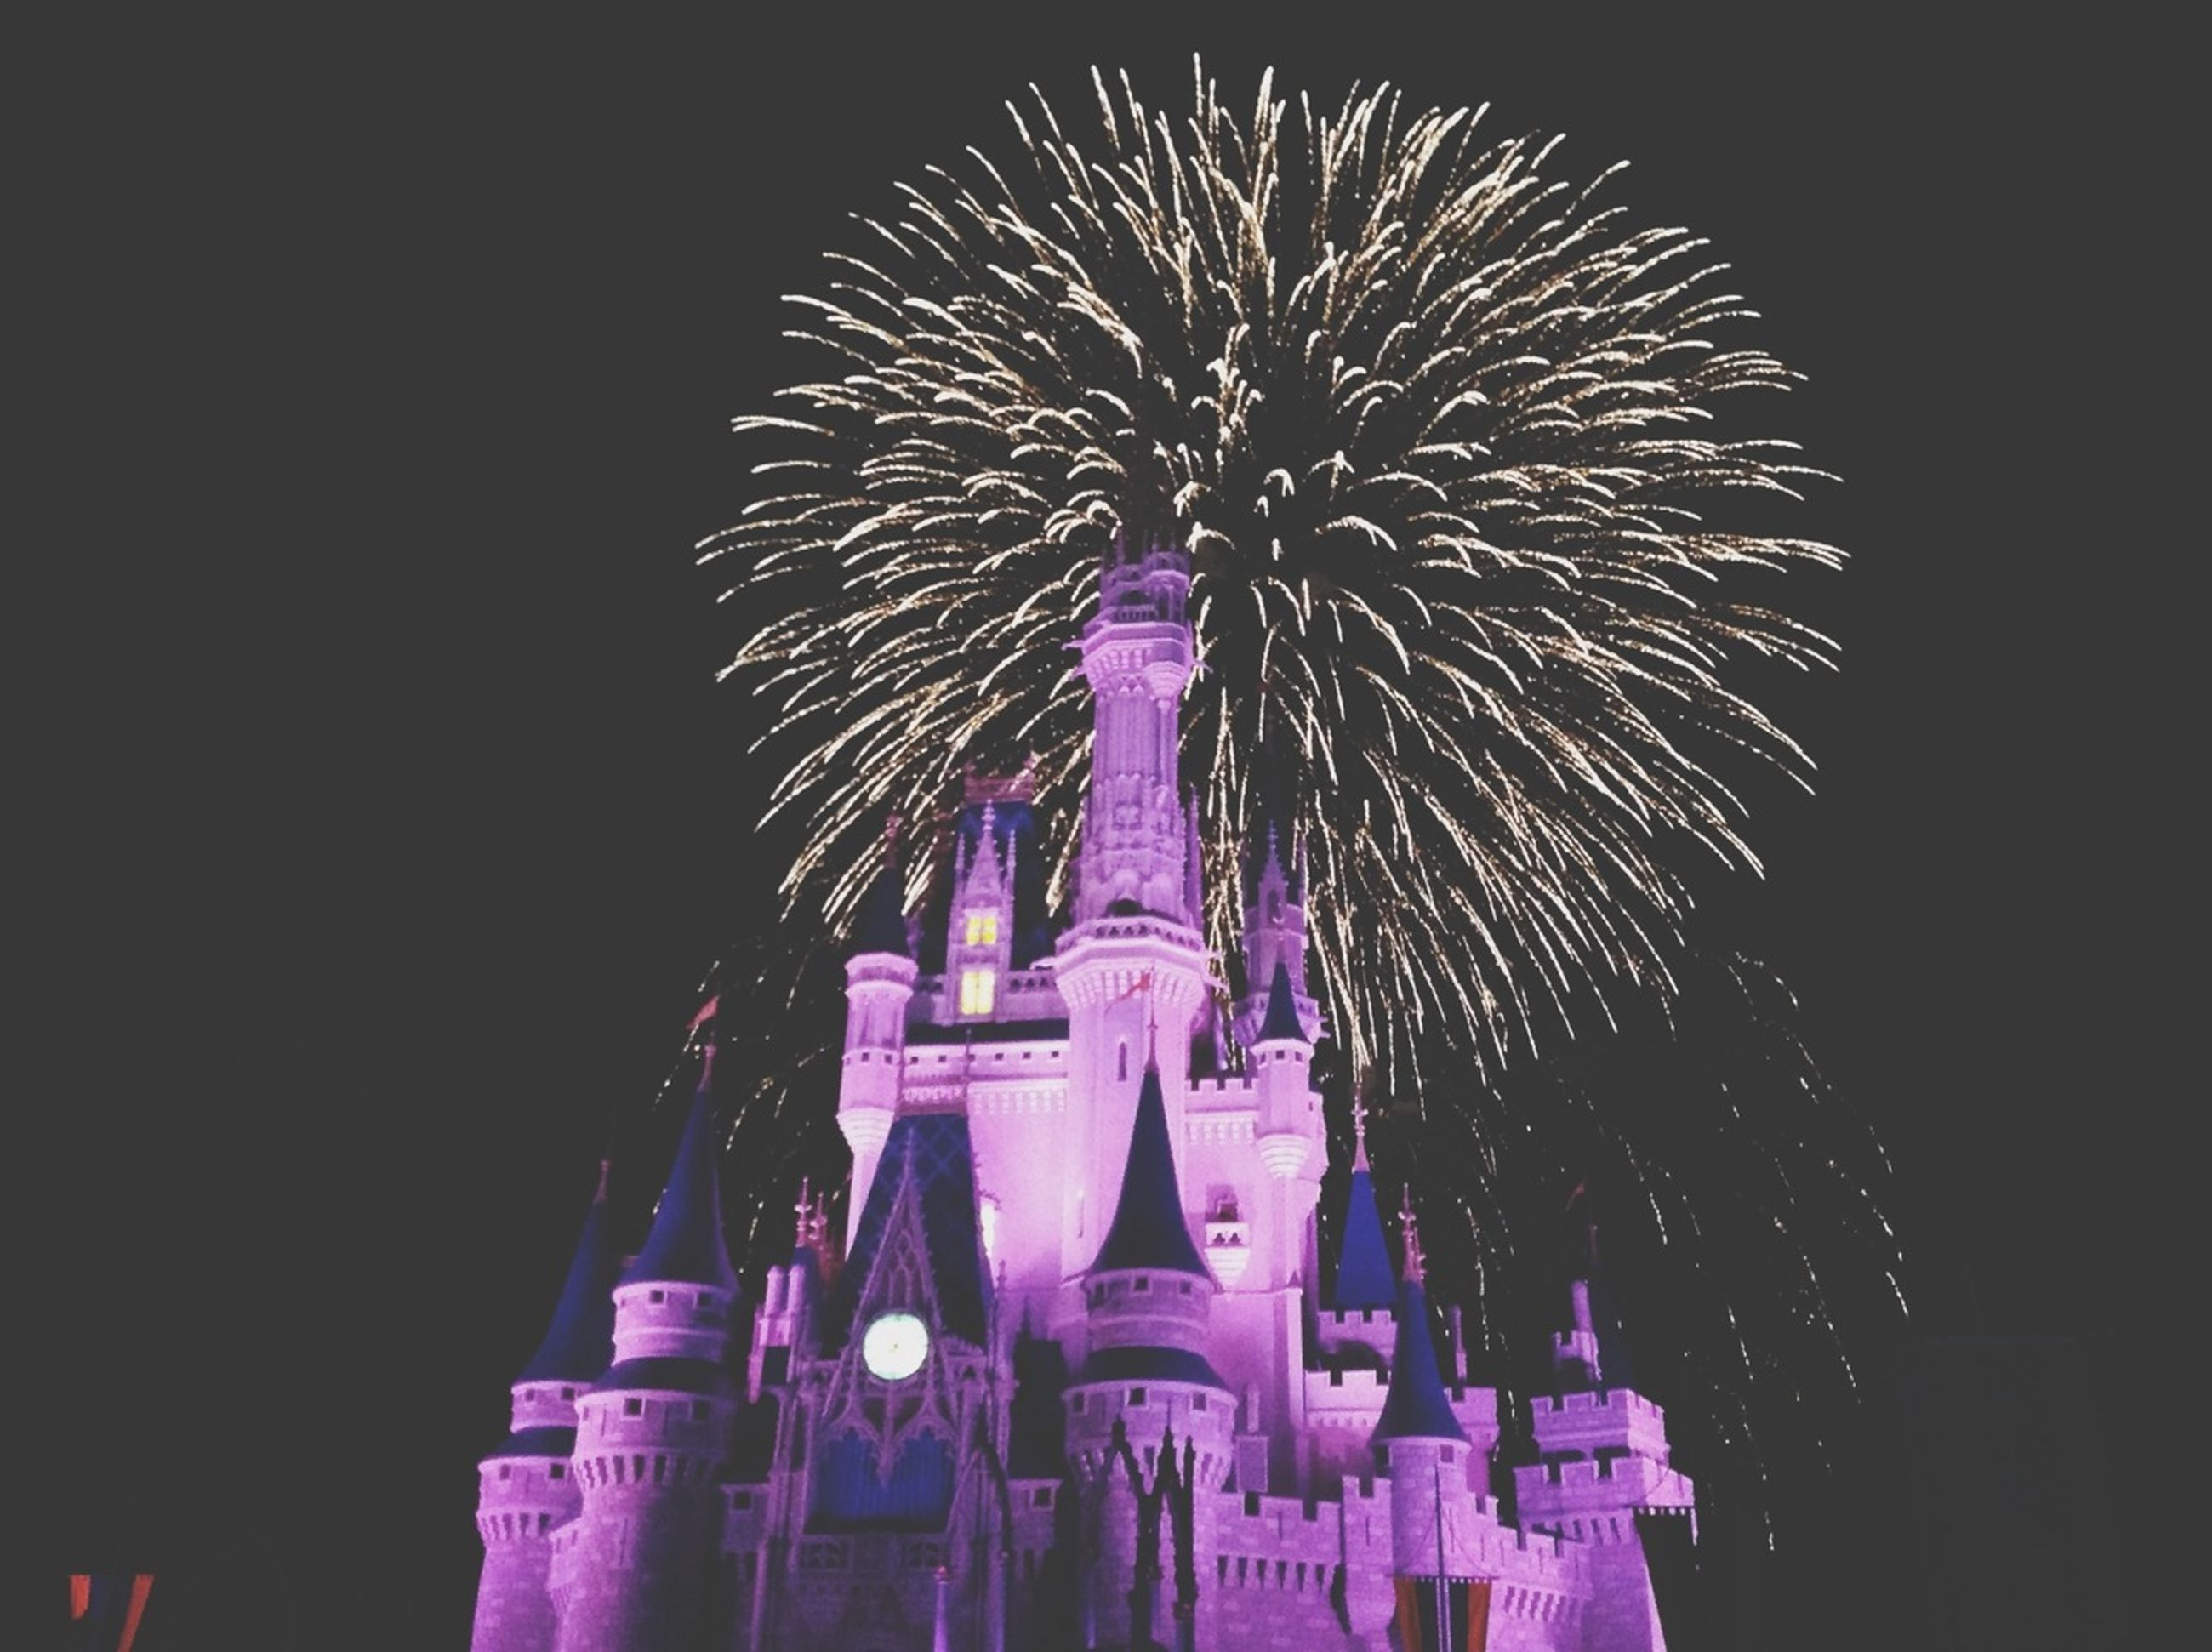 night, illuminated, low angle view, celebration, arts culture and entertainment, firework display, firework - man made object, long exposure, exploding, motion, event, building exterior, architecture, built structure, blurred motion, sky, glowing, entertainment, sparks, clear sky